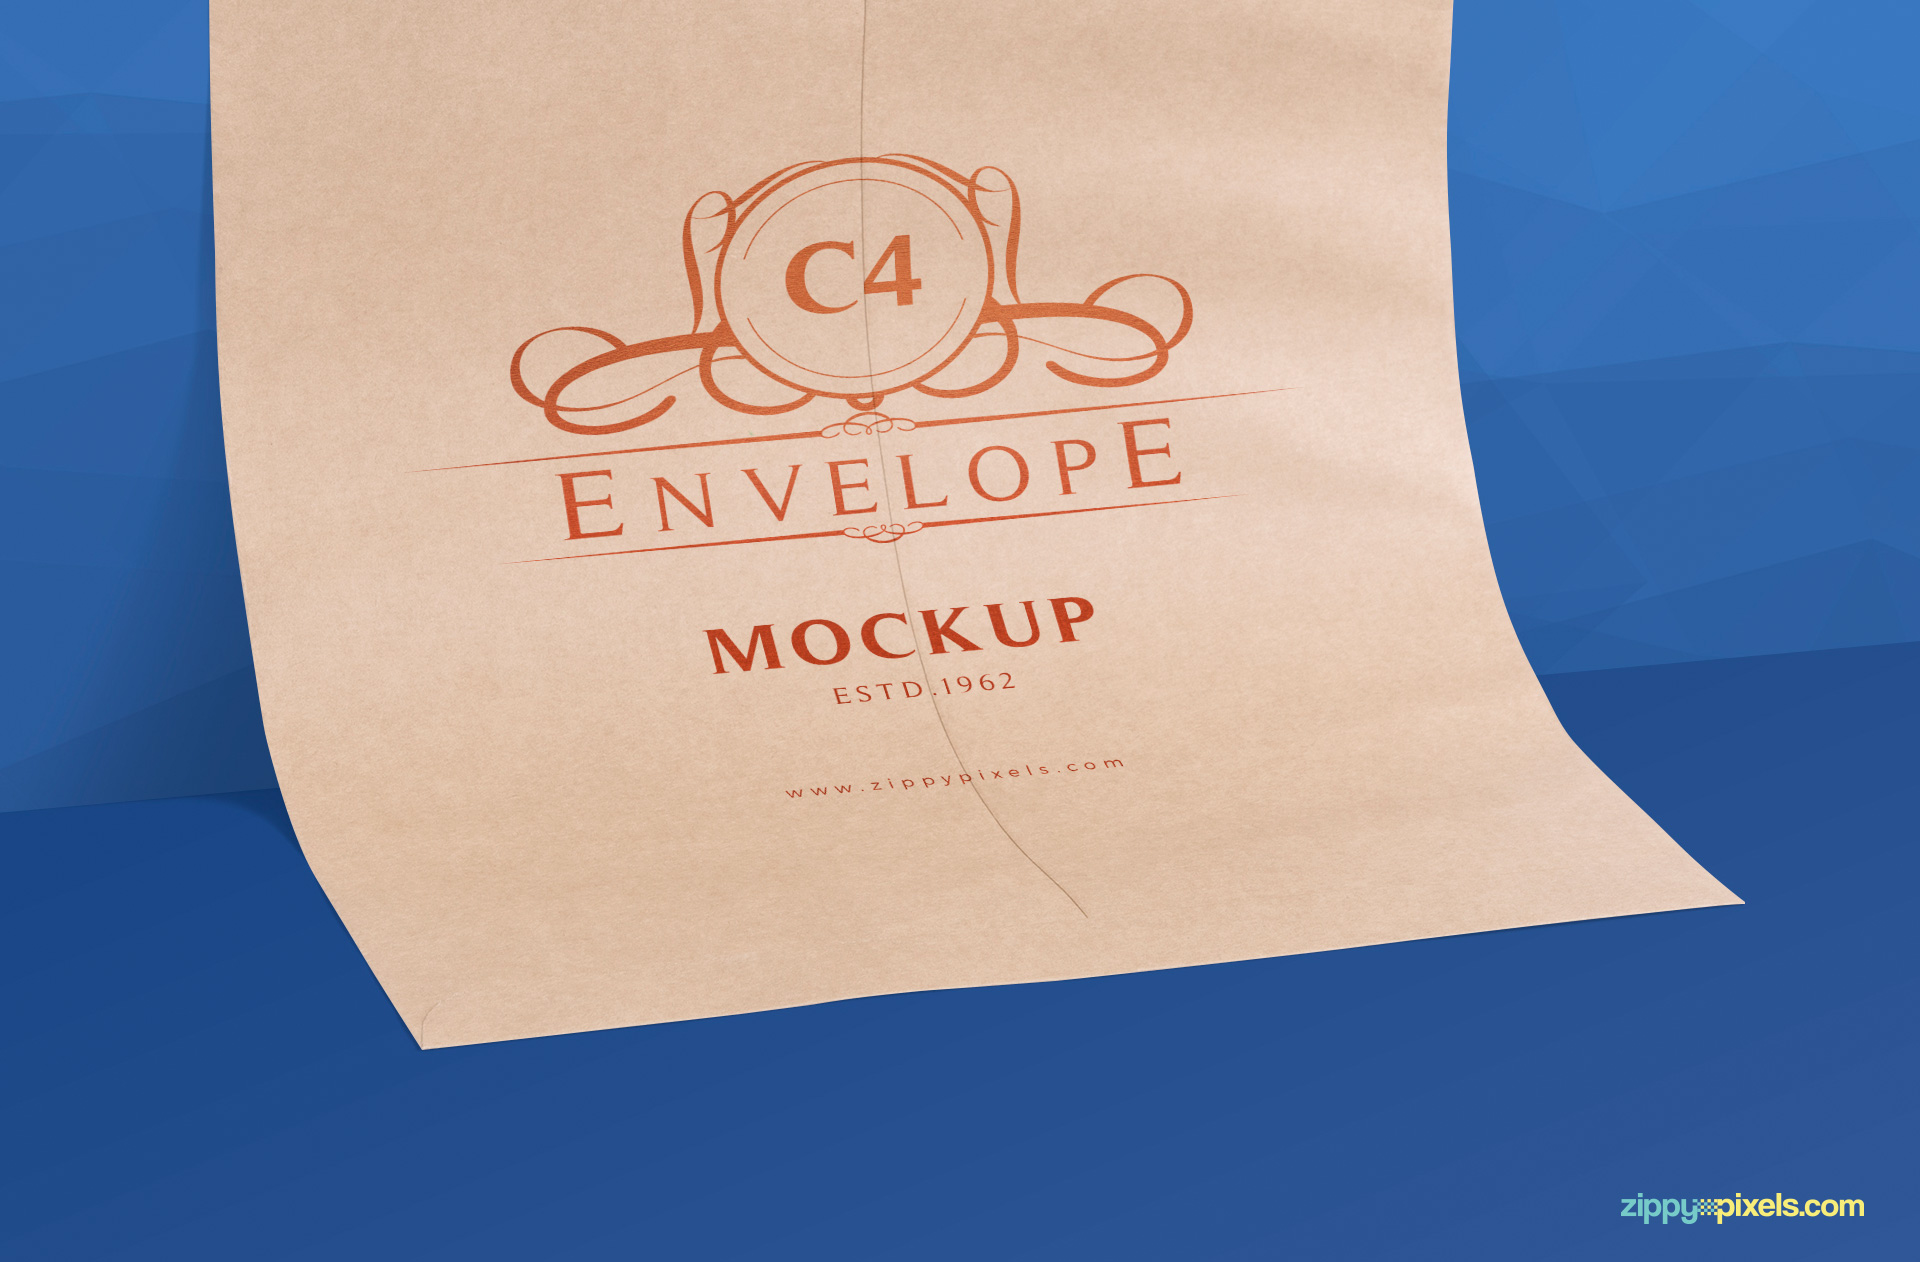 zoom in view of c4 envelope mockup psd free